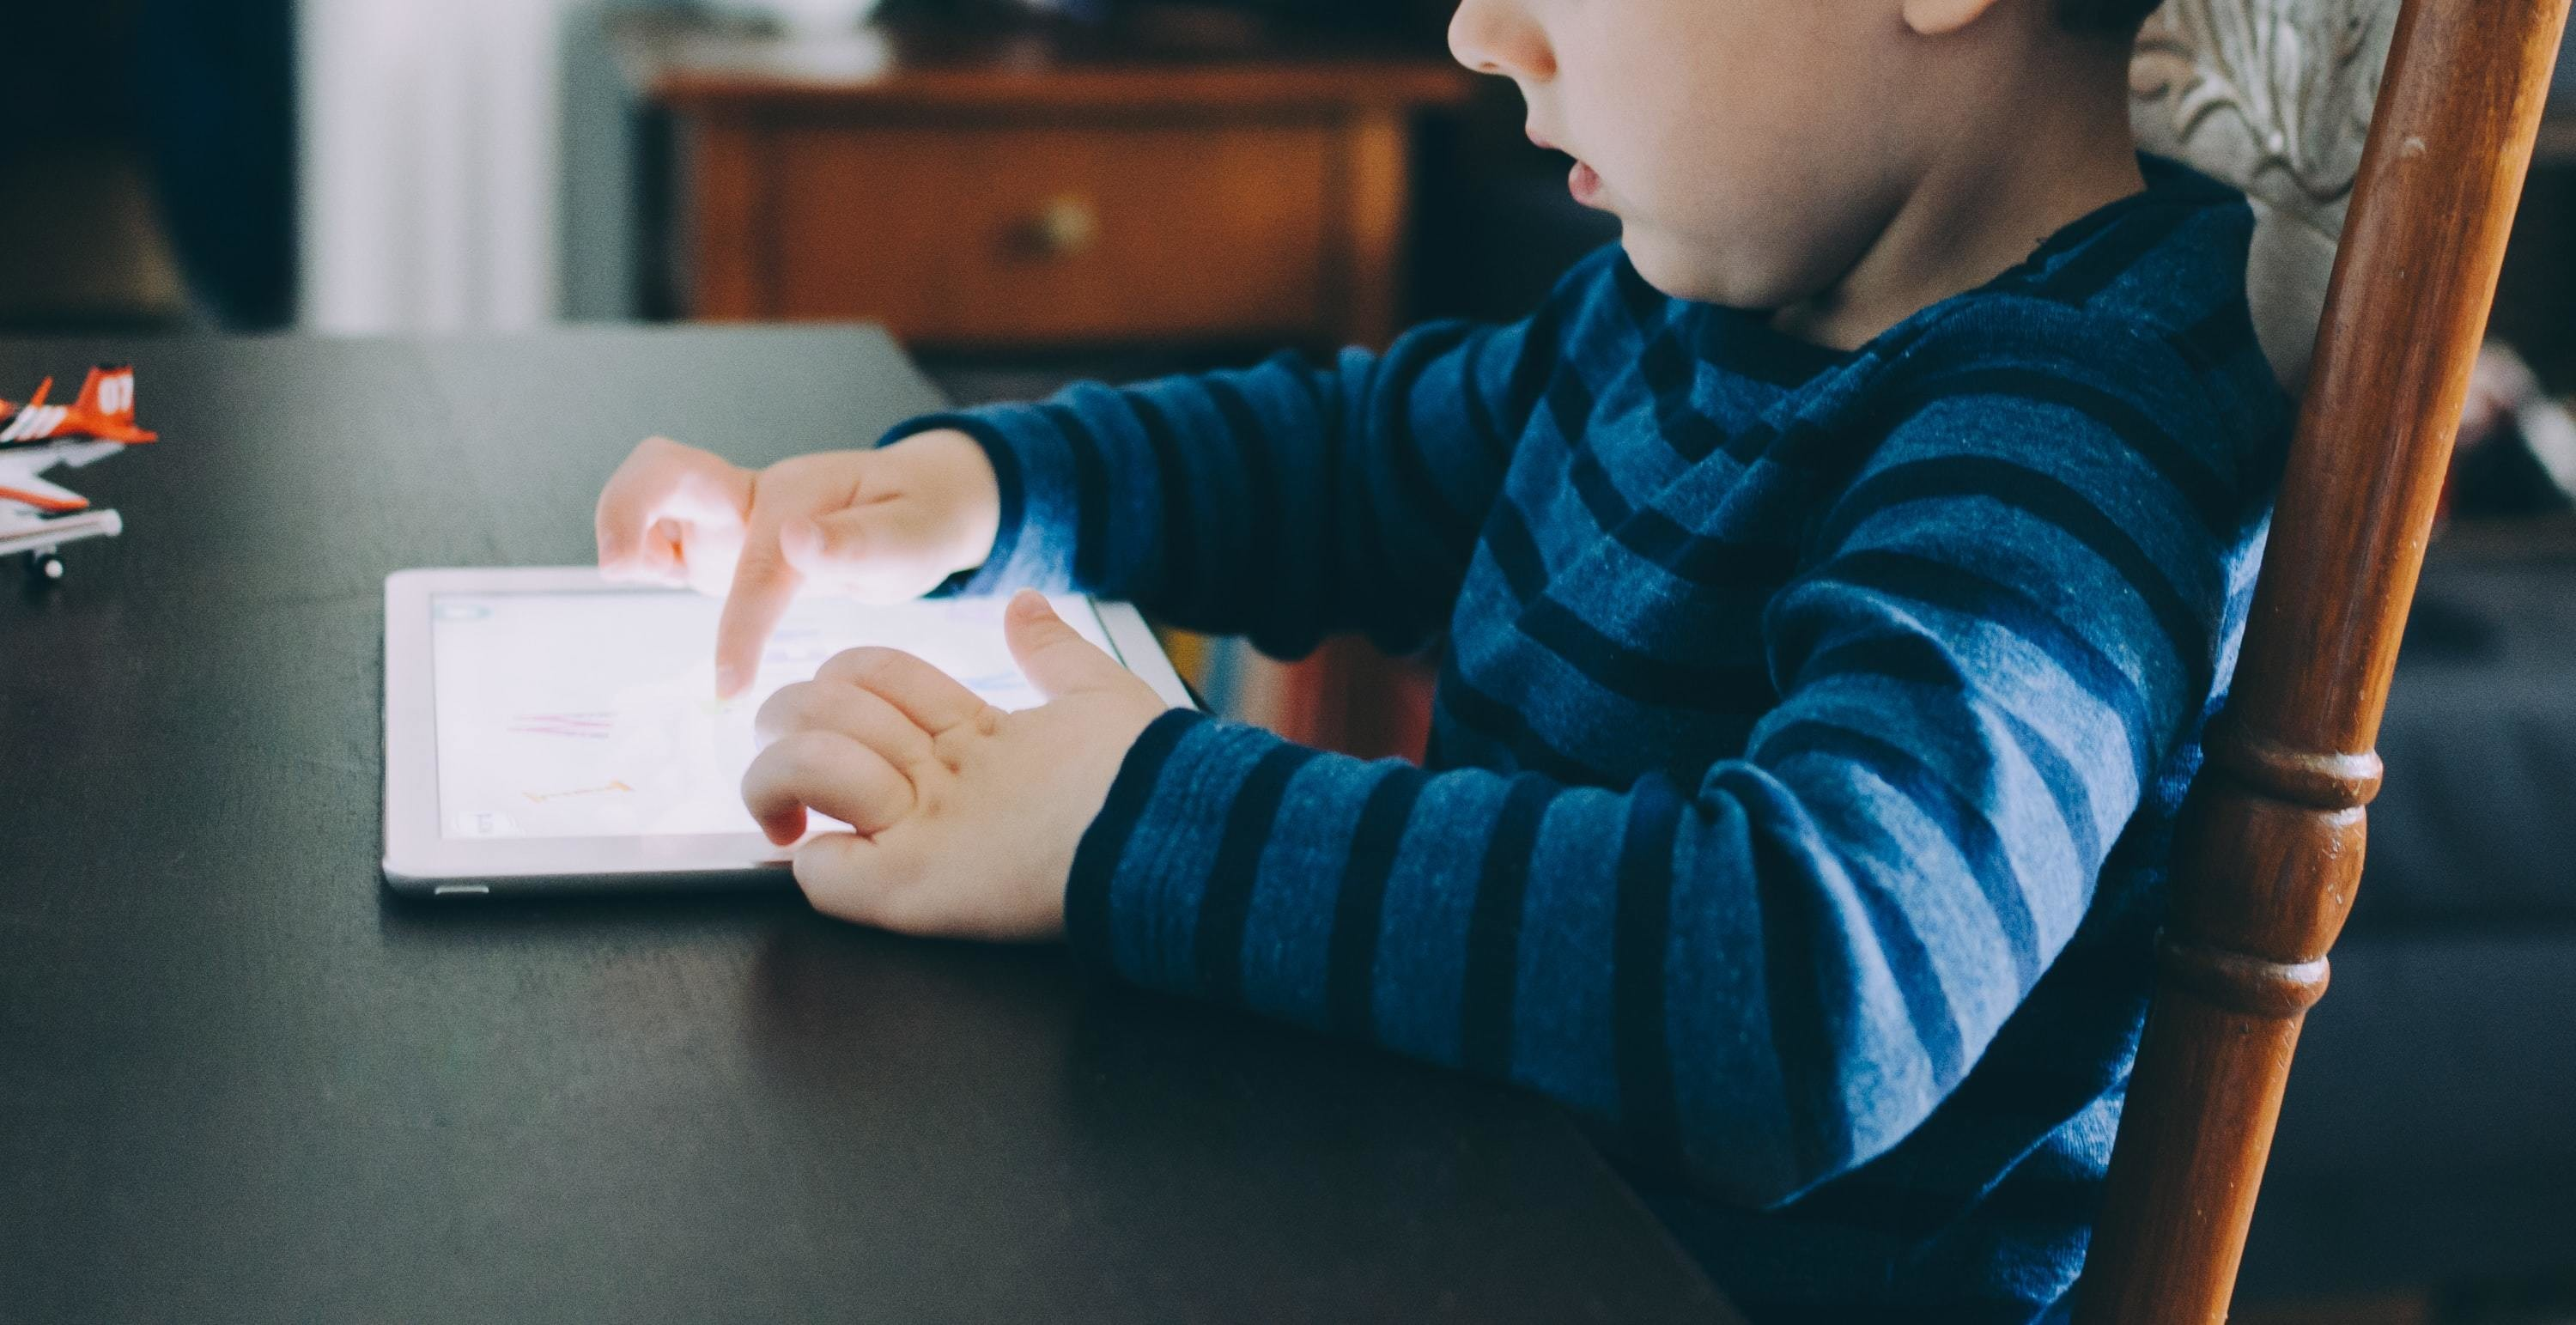 To get the educational benefits from using a tablet, it's best for children to focus on interactive tasks like this young boy is doing here, rather than passive ones.